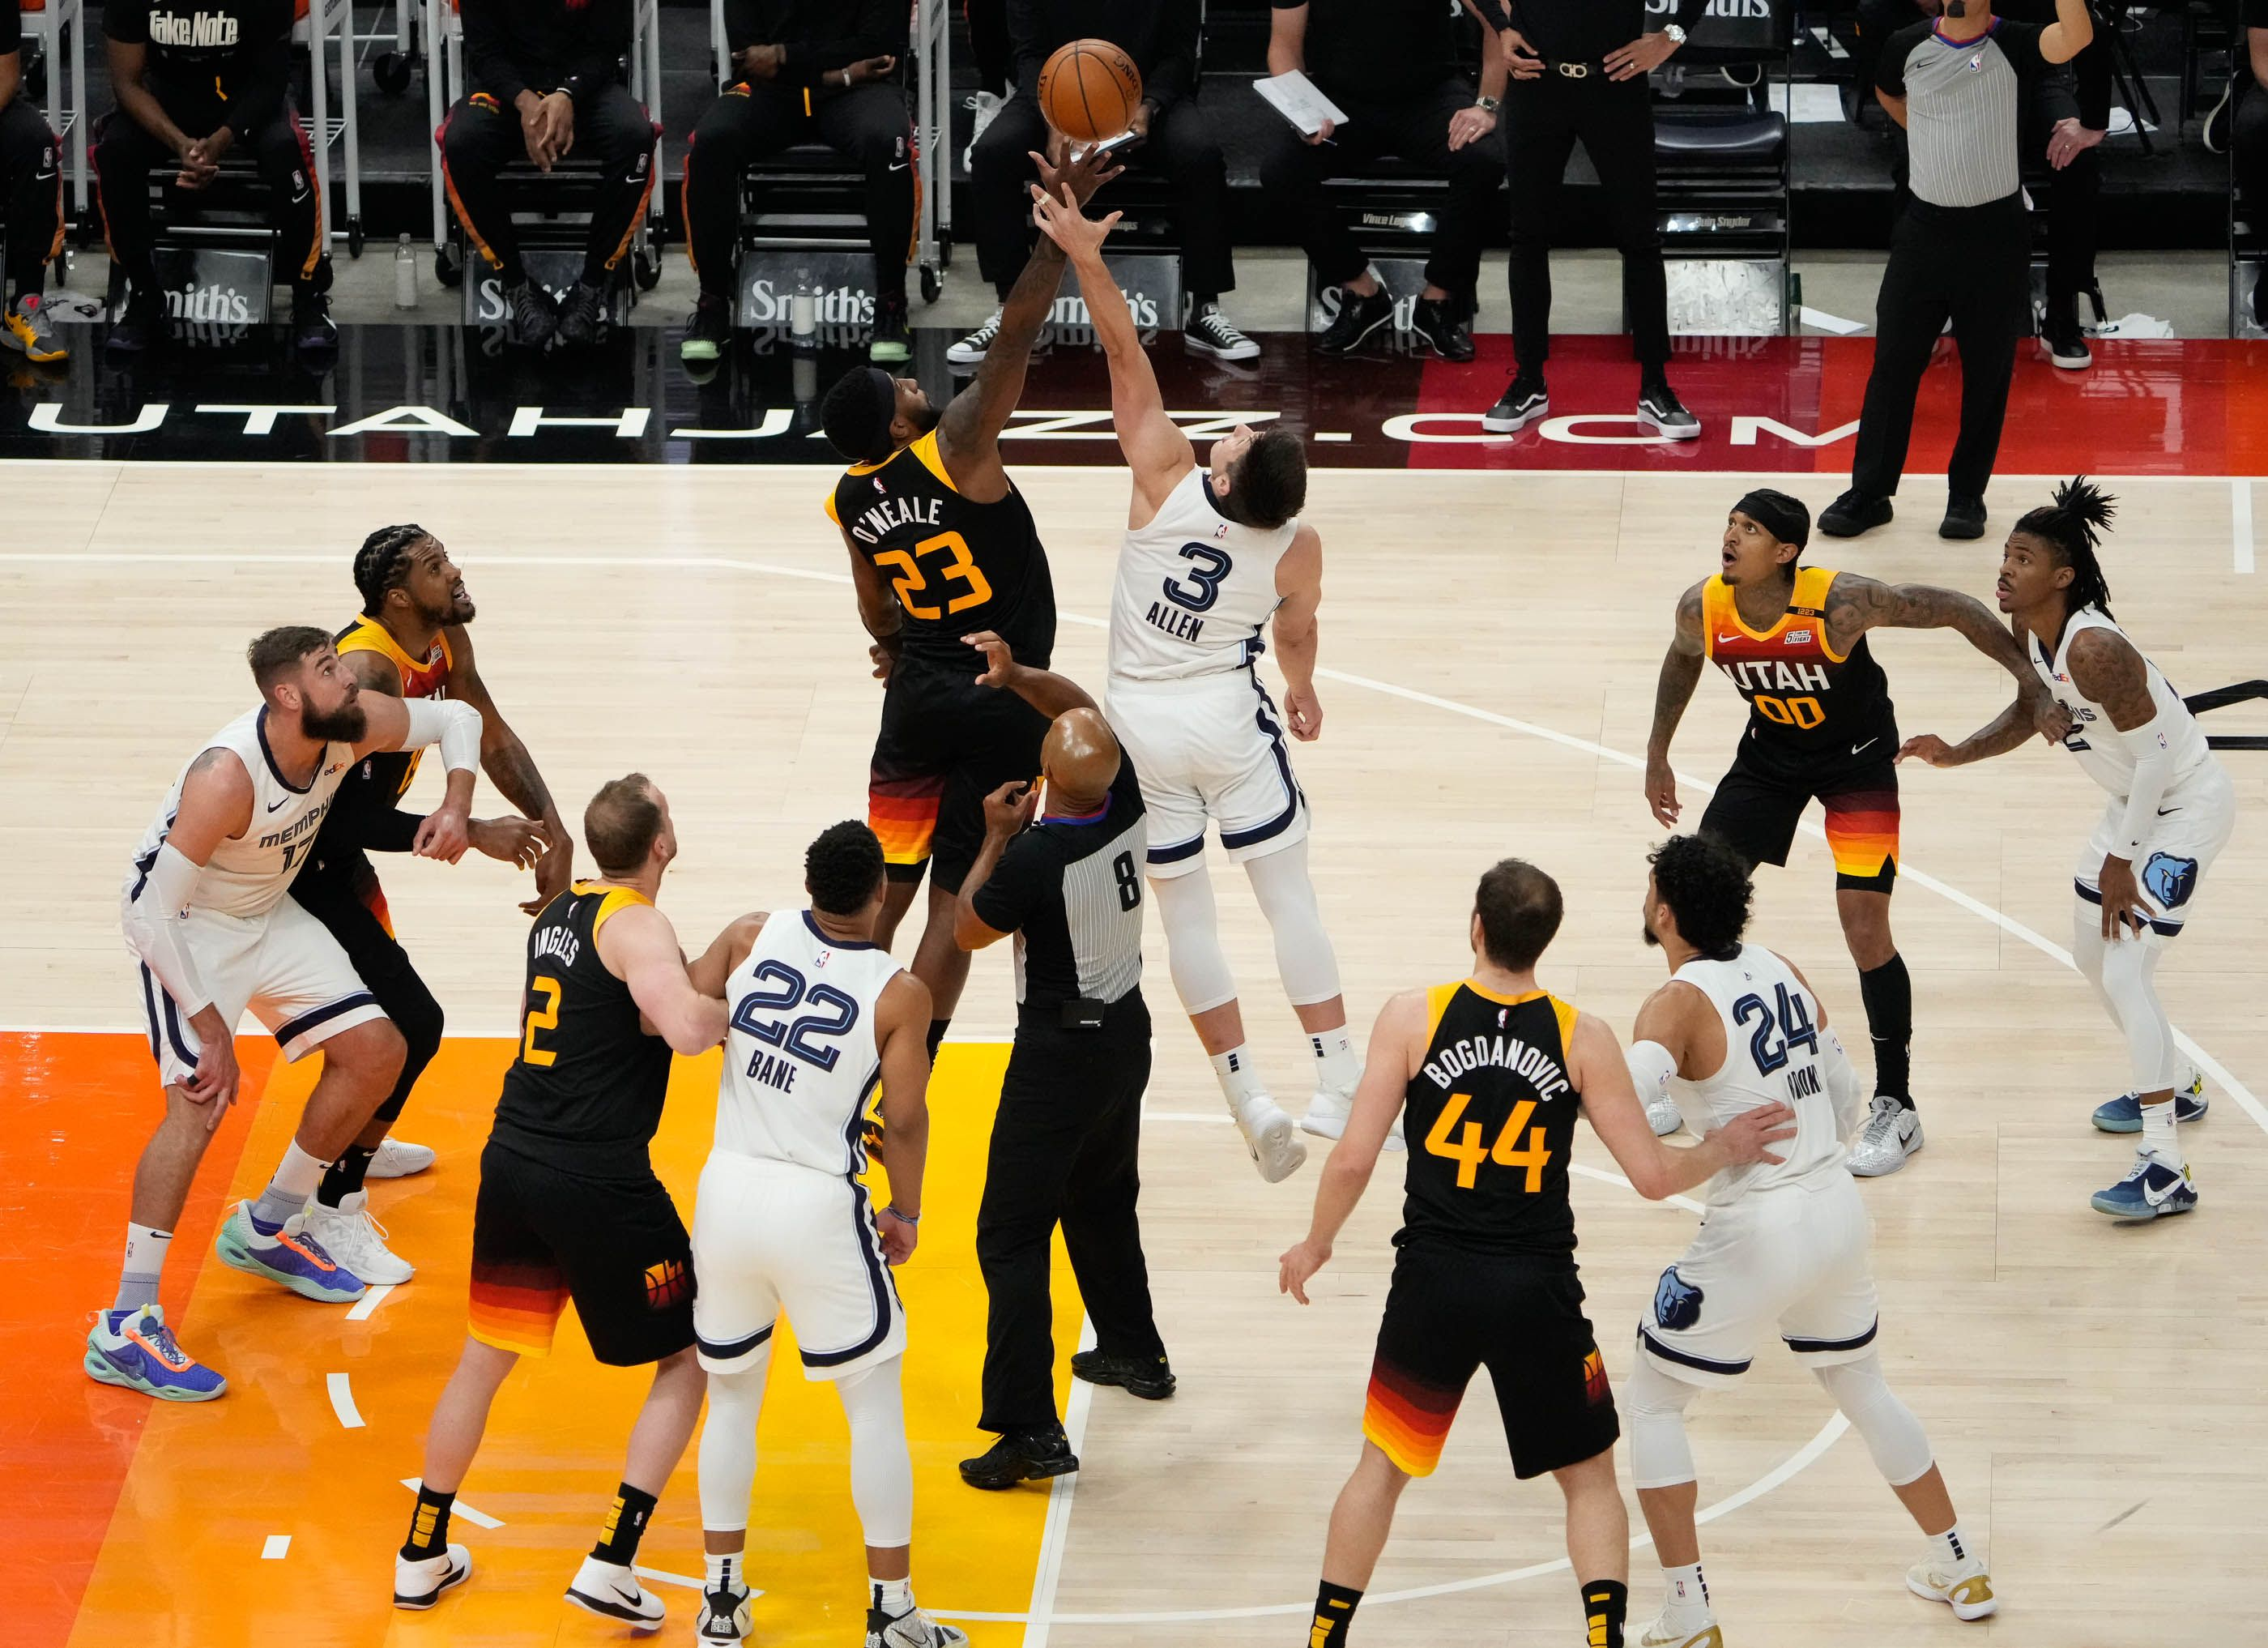 (Francisco Kjolseth | The Salt Lake Tribune) Utah Jazz forward Royce O'Neale (23) goes up for a jump ball against Memphis Grizzlies guard Grayson Allen (3) in the first half of Game 5 of an NBA basketball first-round playoff series Wednesday, June 2, 2021, in Salt Lake City, UT.